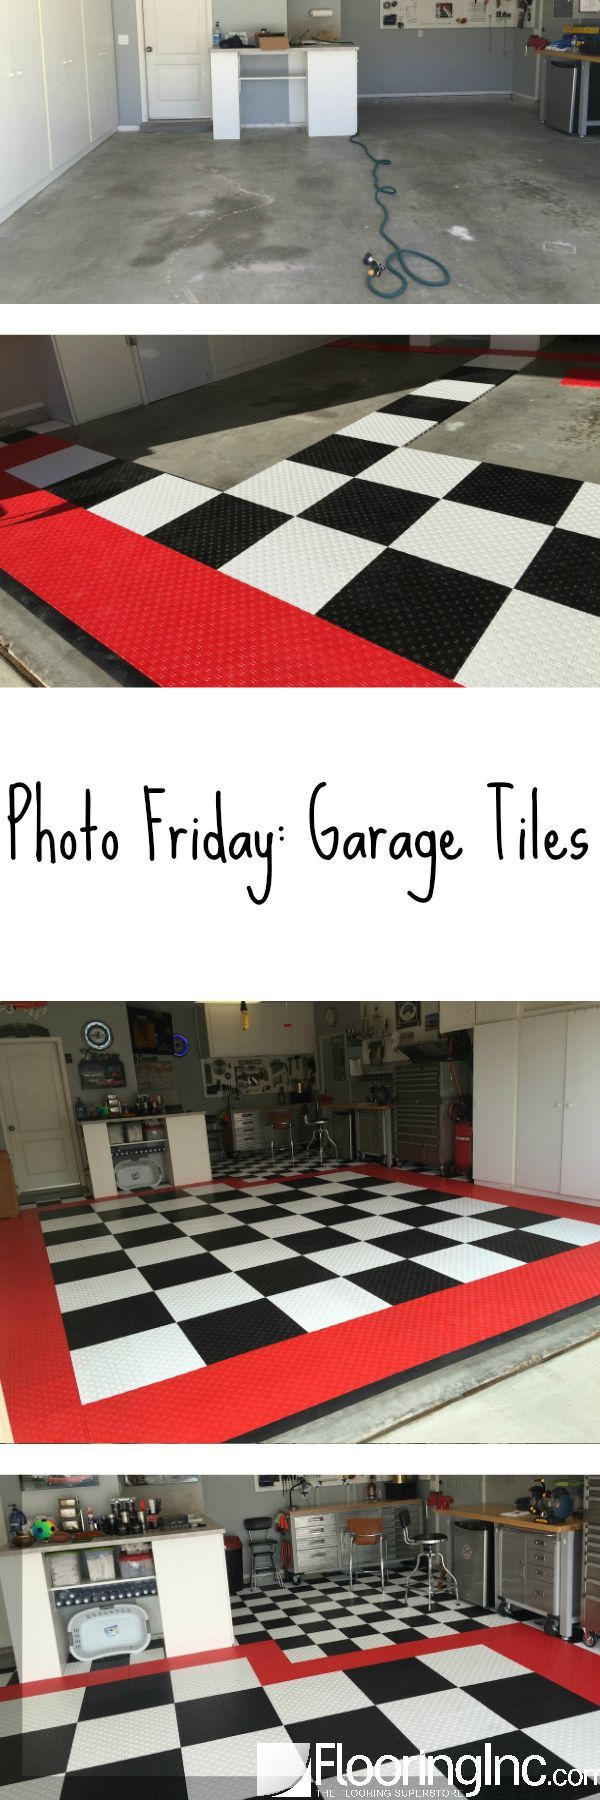 Harley color carpet tiles - Photo Friday 7